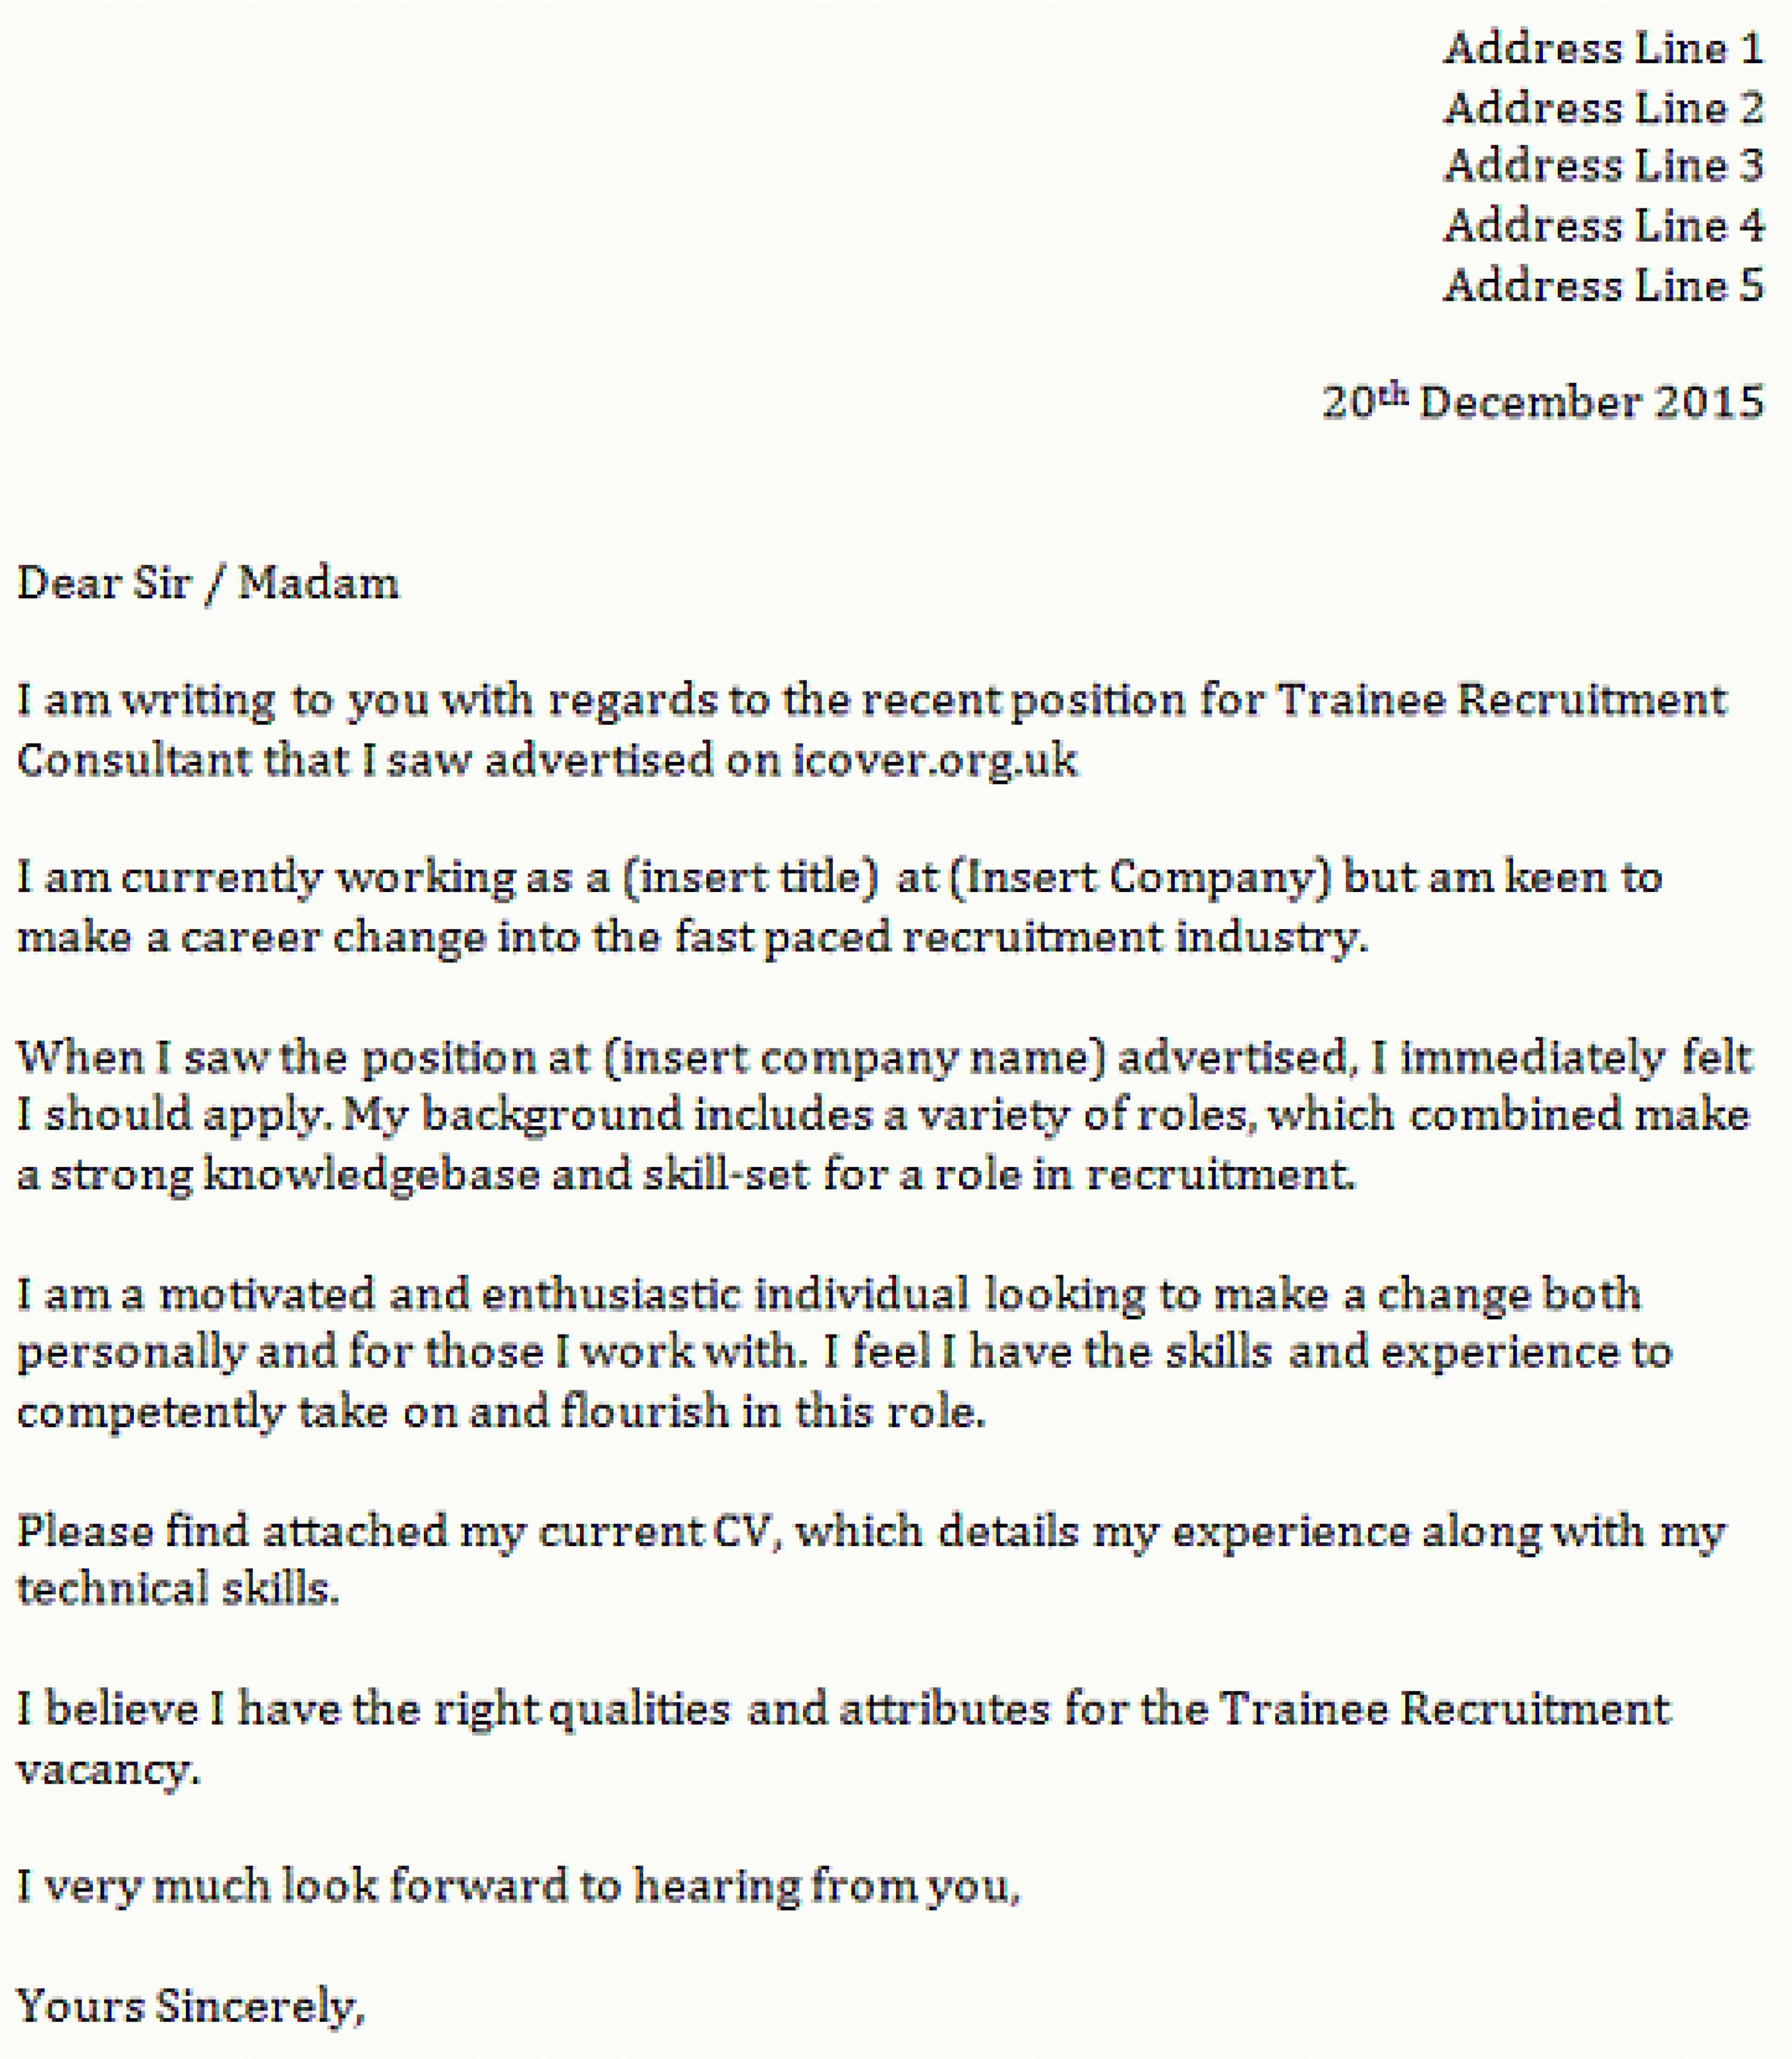 Resume Address format - Example A Great Cover Letter Fresh who to Address Cover Letter to